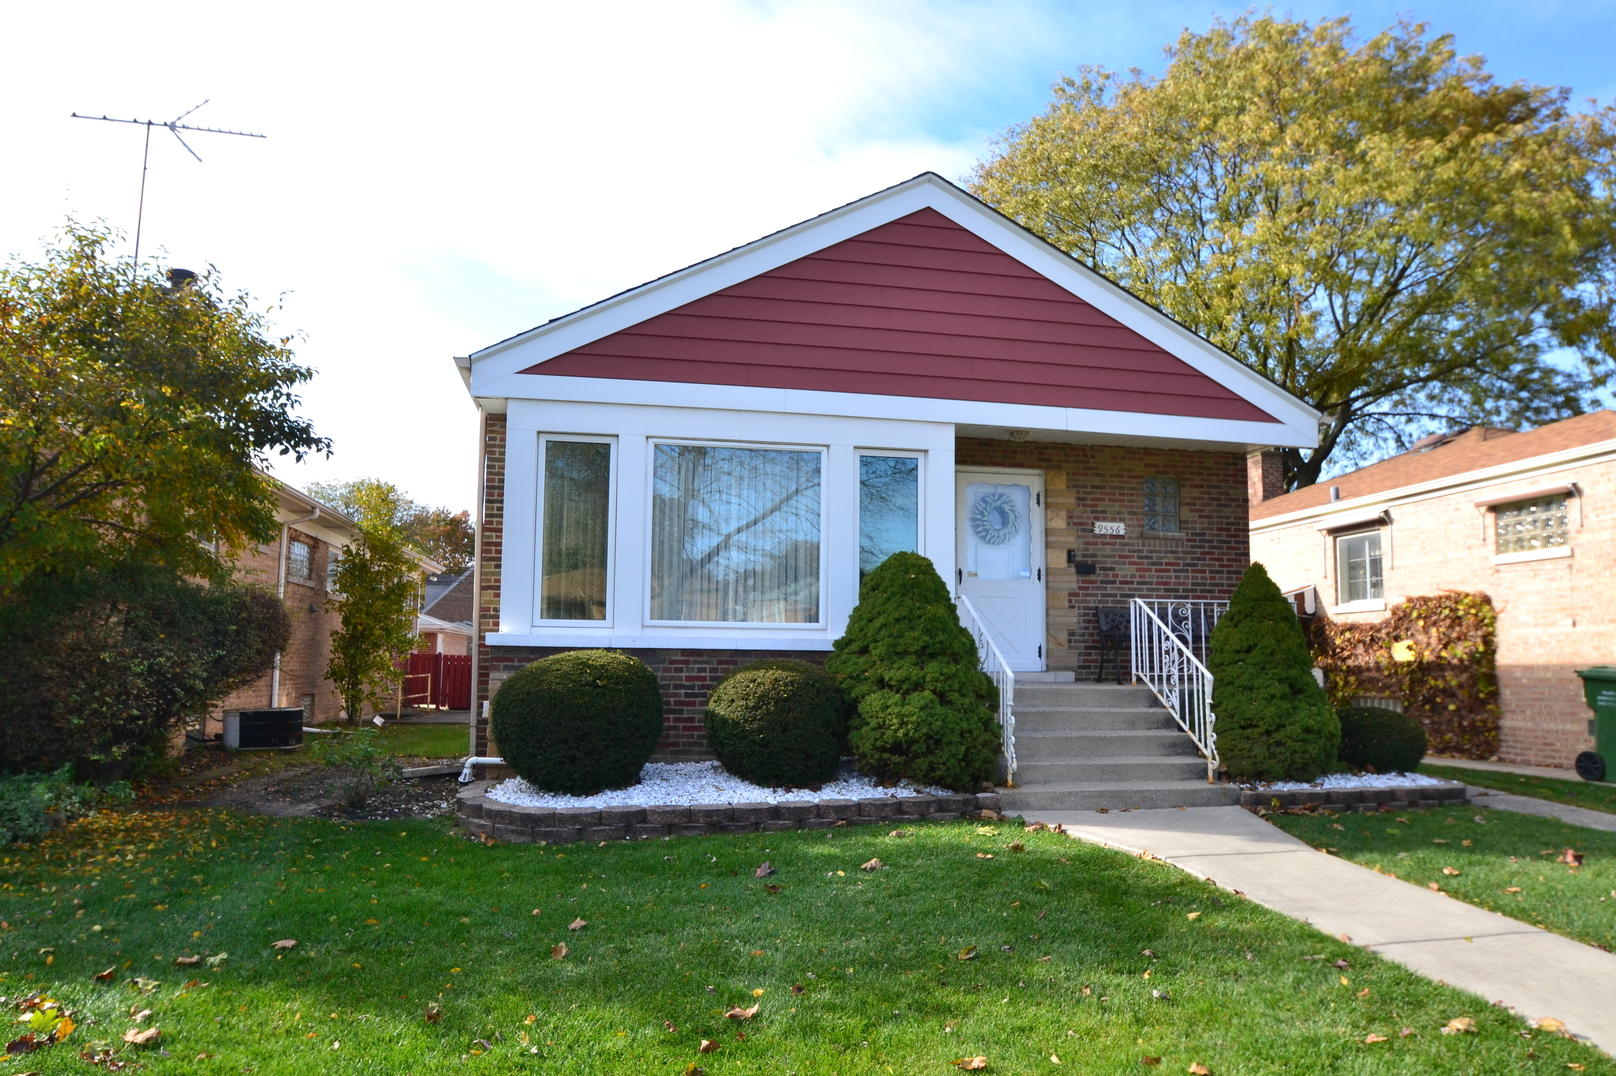 Photo of 9556 Mozart Evergreen Park IL 60805